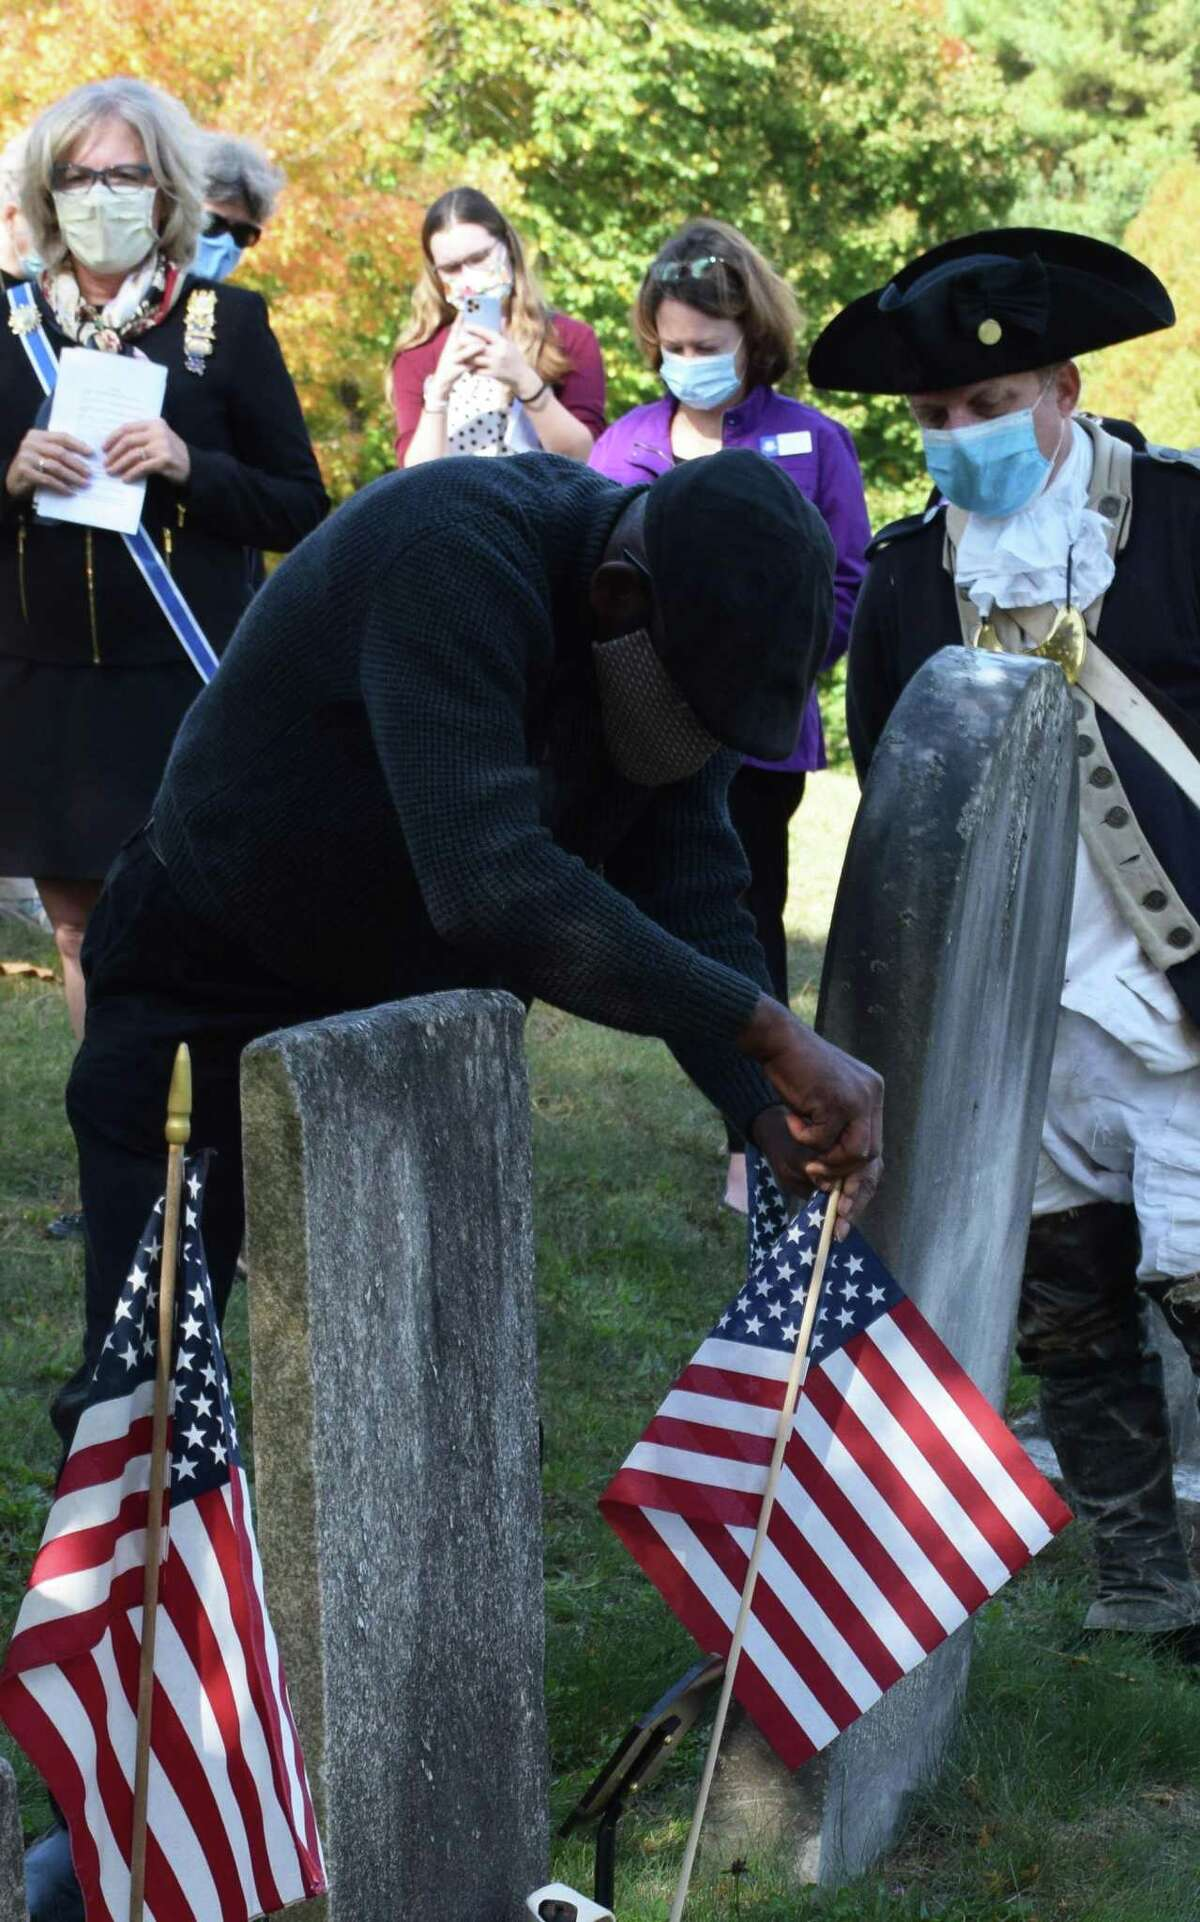 William Fothergill of Hartford, a descendant of Samuel and Jeruel Phillips, places an American flag at the grave sites.